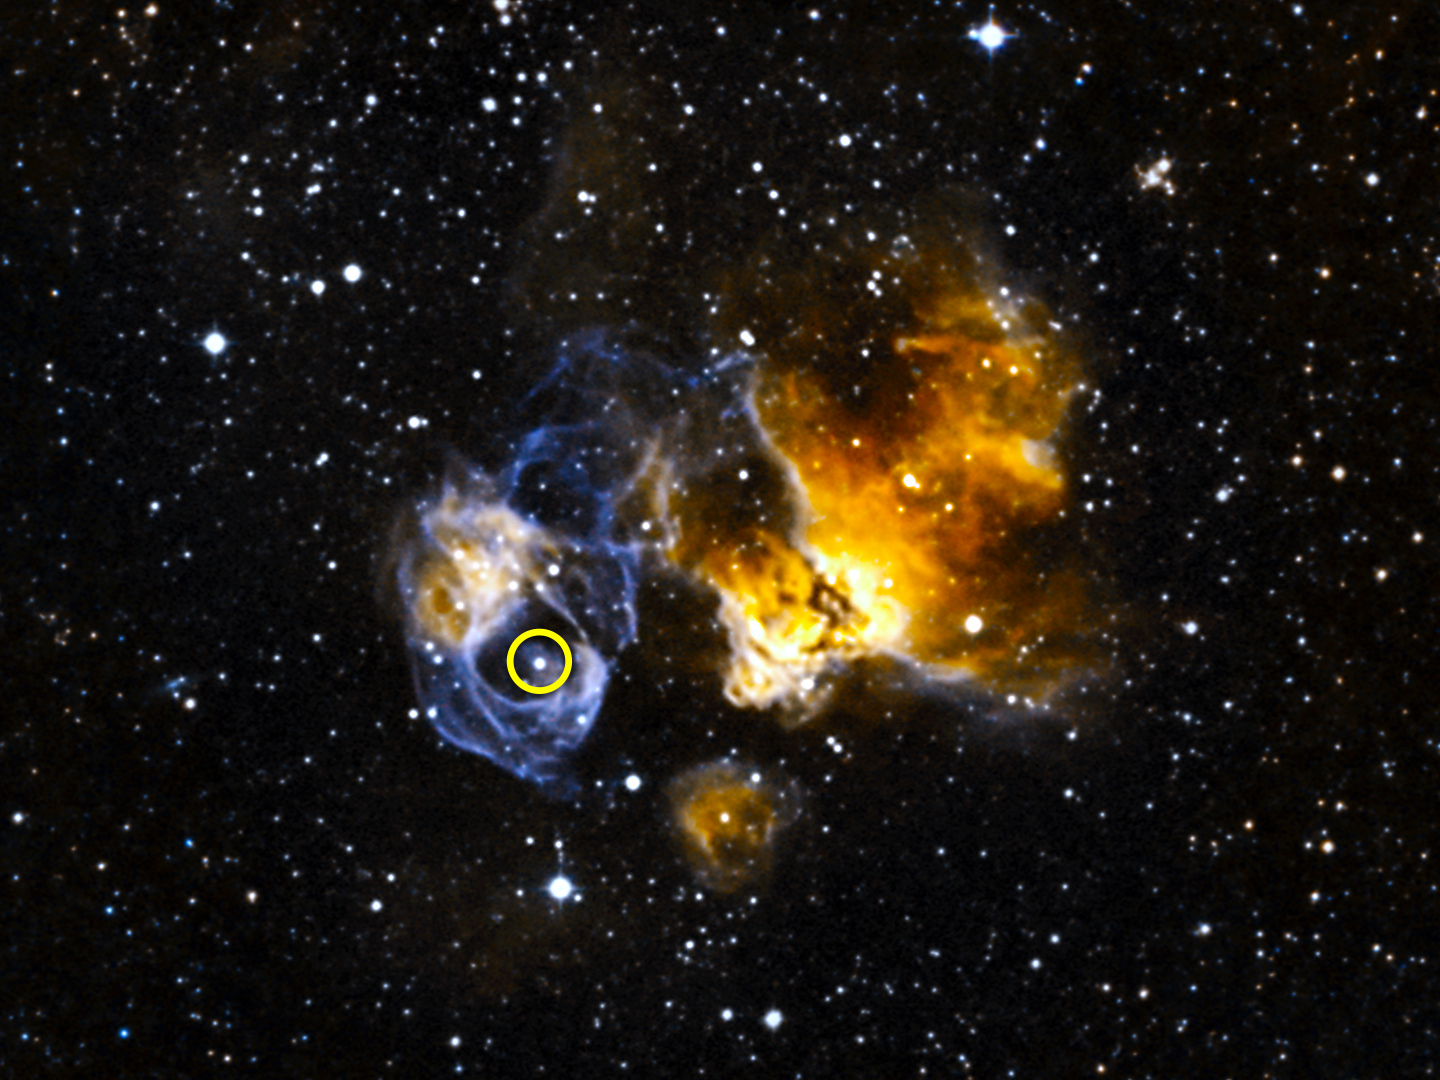 LMC P3 (circled) is located in a supernova remnant called DEM L241 in the Large Magellanic Cloud (LMC), a small galaxy about 163,000 light-years away. The system is the first gamma-ray binary discovered in another galaxy and is the most luminous known in gamma rays, X-rays, radio waves and visible light. Image credit: NASA's Goddard Space Flight Center.